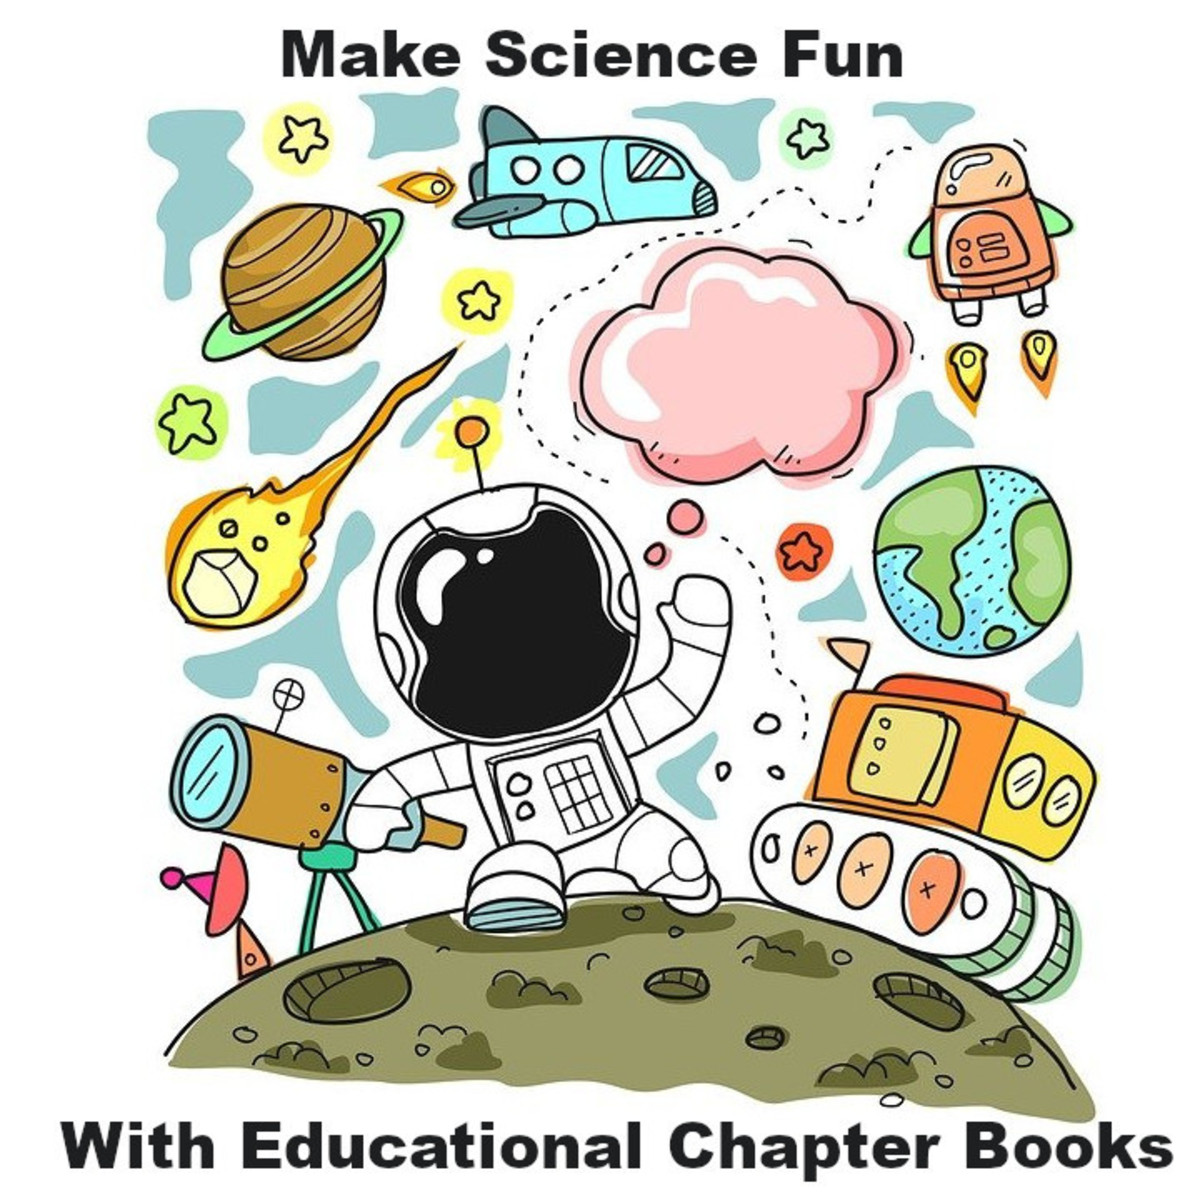 Encourage a love of science with educational chapter books that teach scientific concepts while telling fun stories.